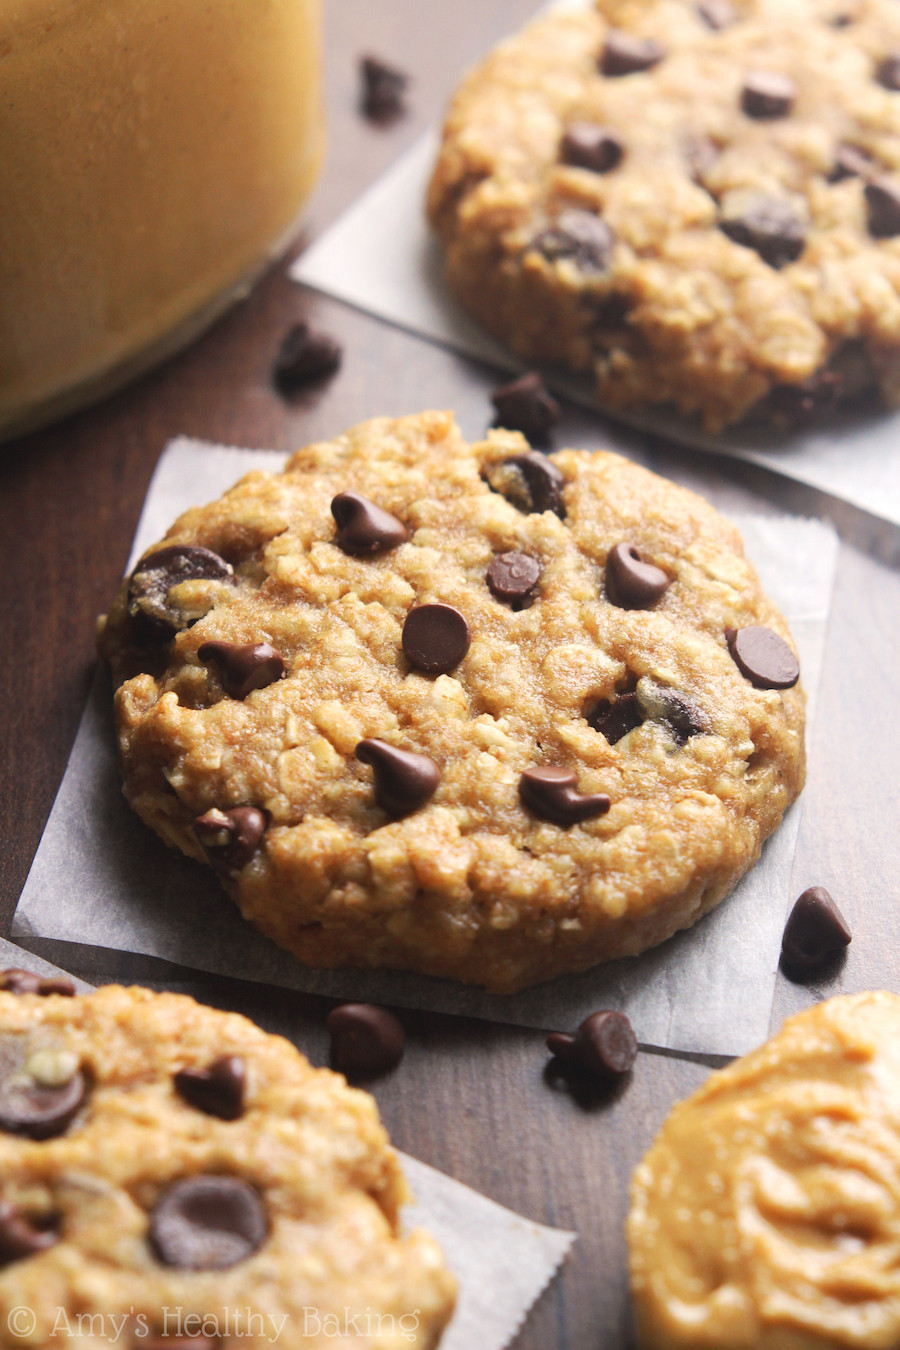 Are Peanut Butter Cookies Healthy  Chocolate Chip Peanut Butter Oatmeal Cookies Recipe Video